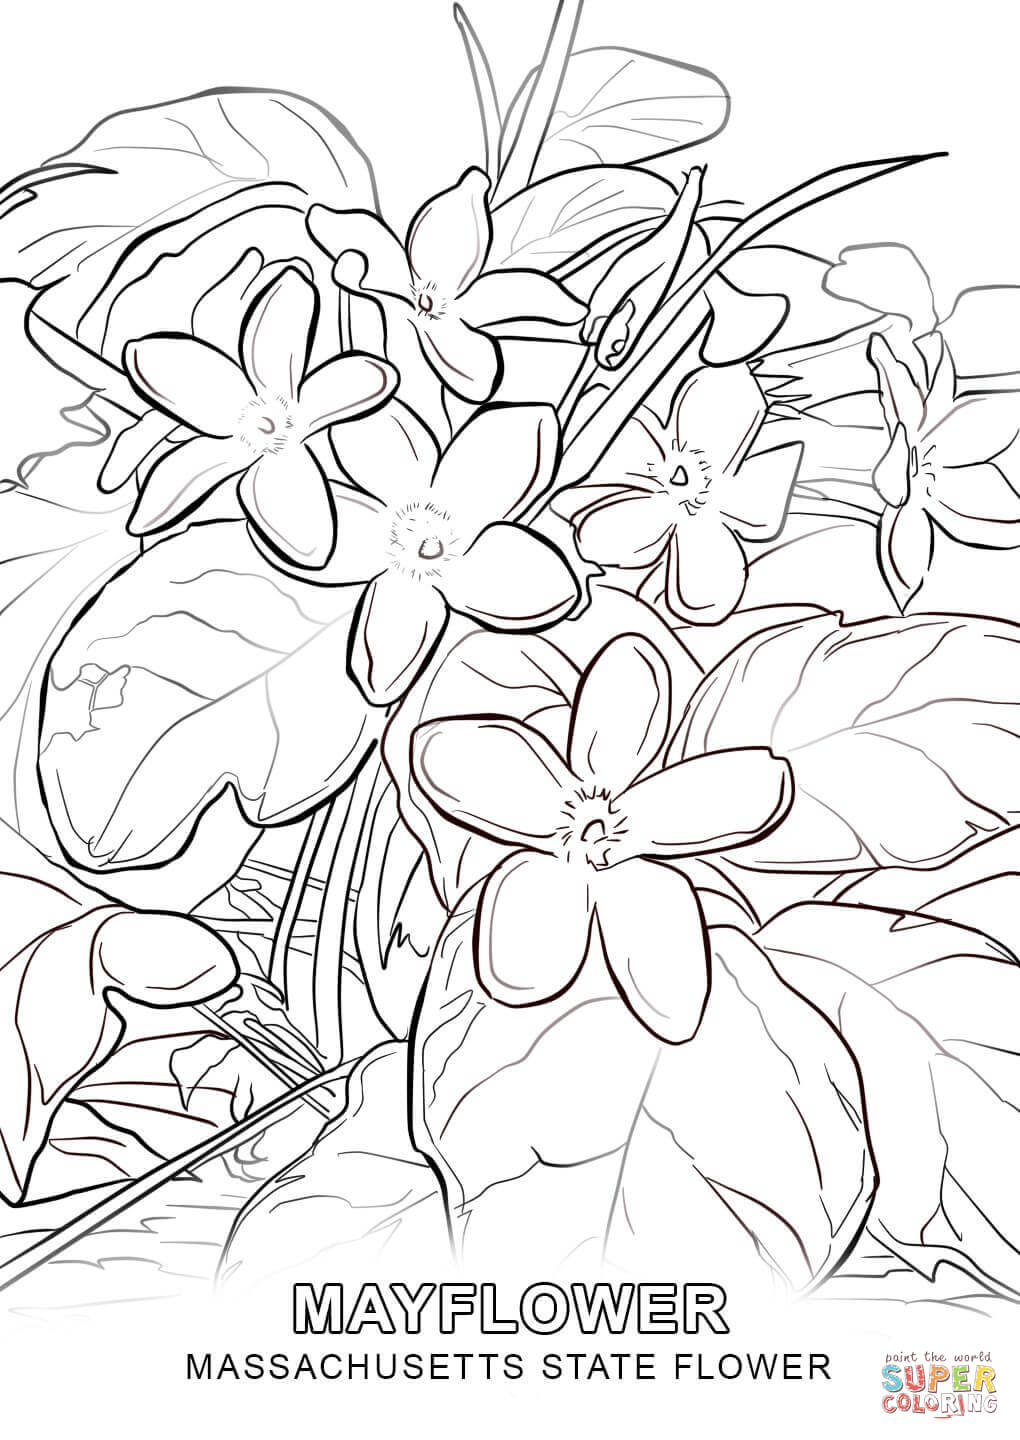 Massachusetts State Flower Coloring Page Free Printable